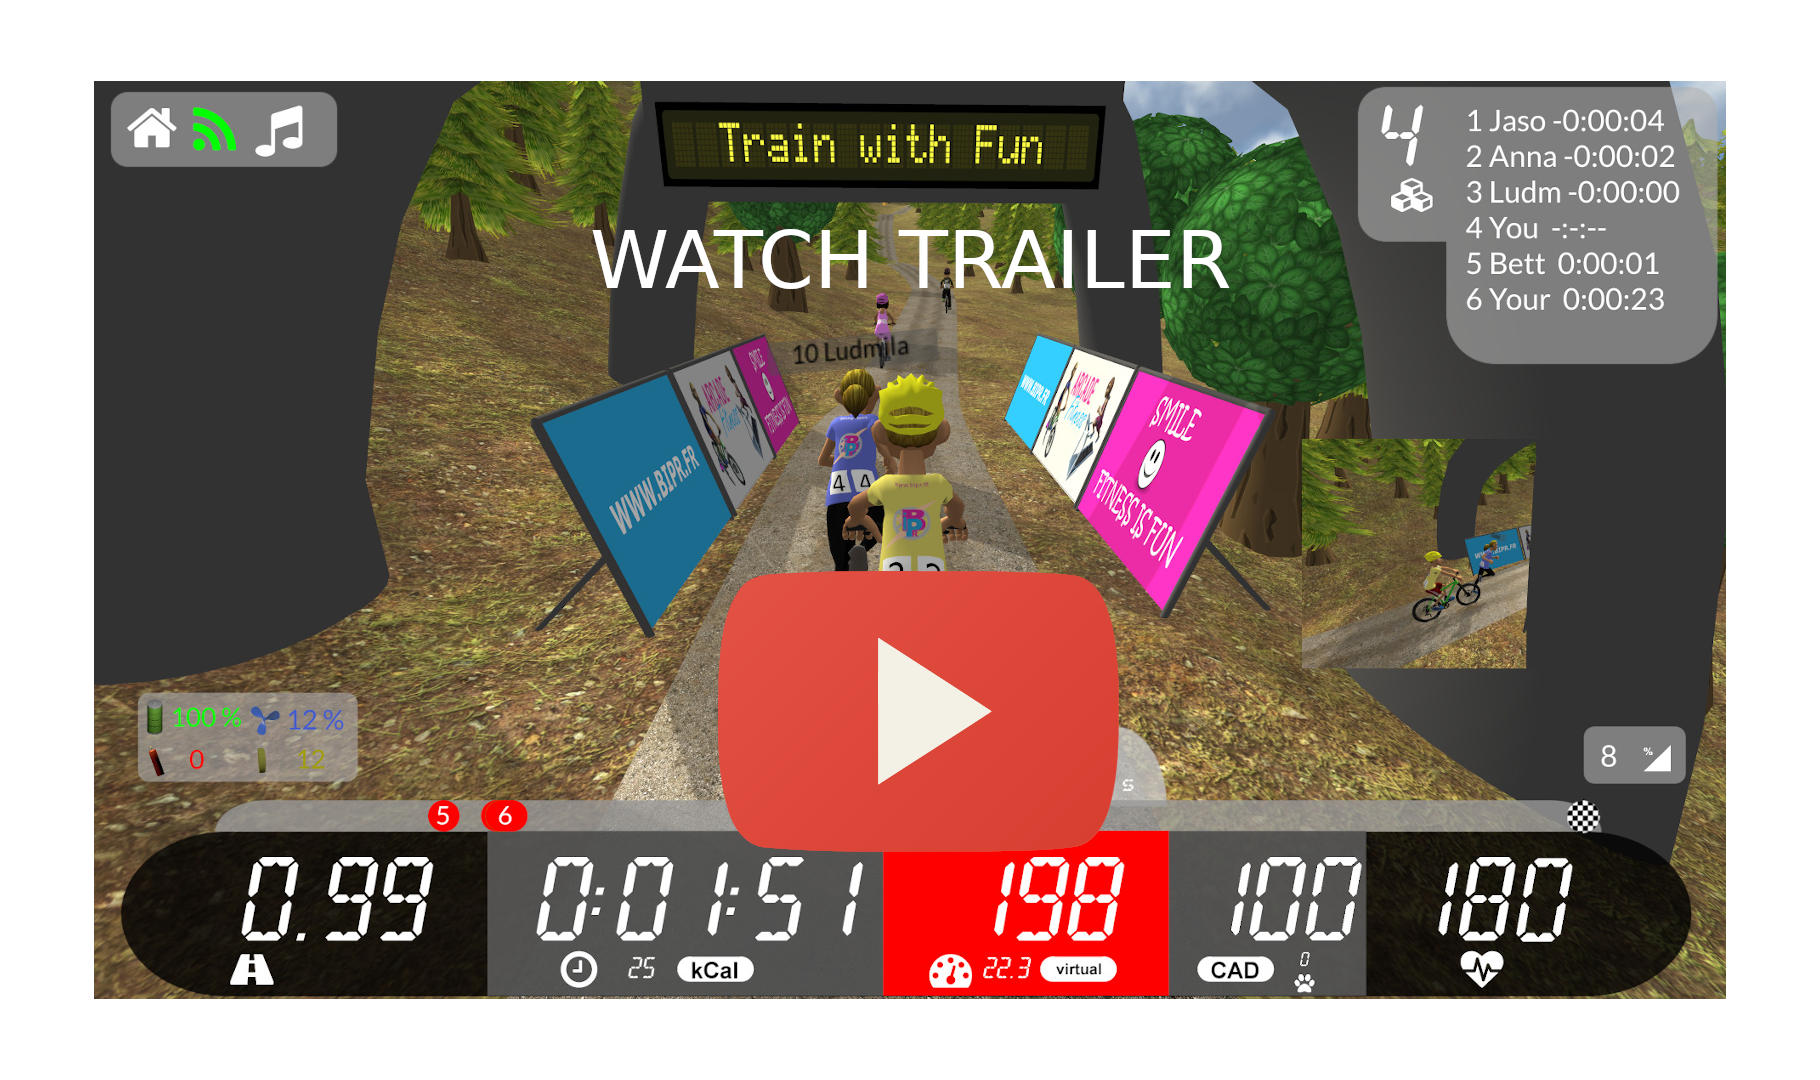 Arcade Fitness Indoo Cycling and Running App Trailer